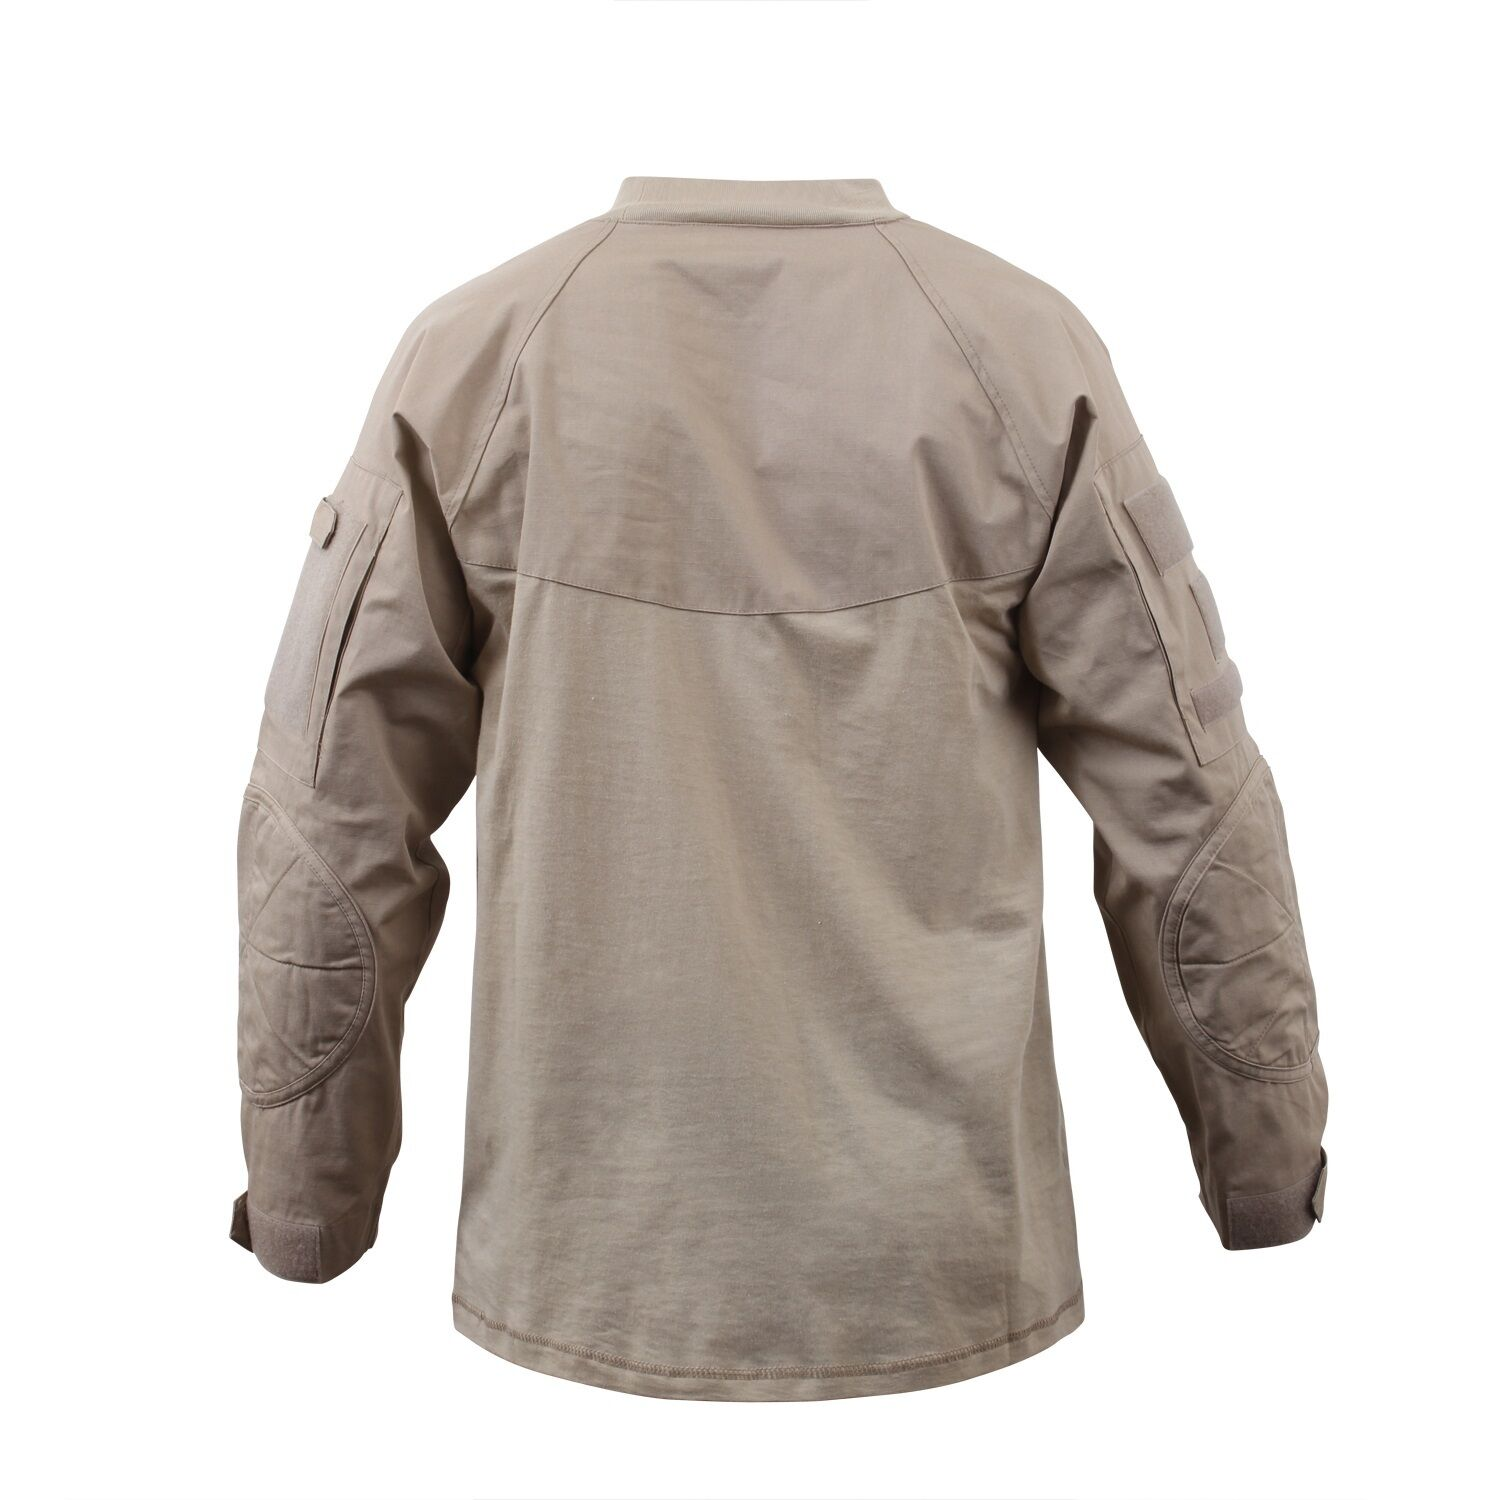 US Desert Sand Military Army PMC Contractor Combat Tactical Tactical Tactical SHIRT S   Small  | Kompletter Spezifikationsbereich  389544